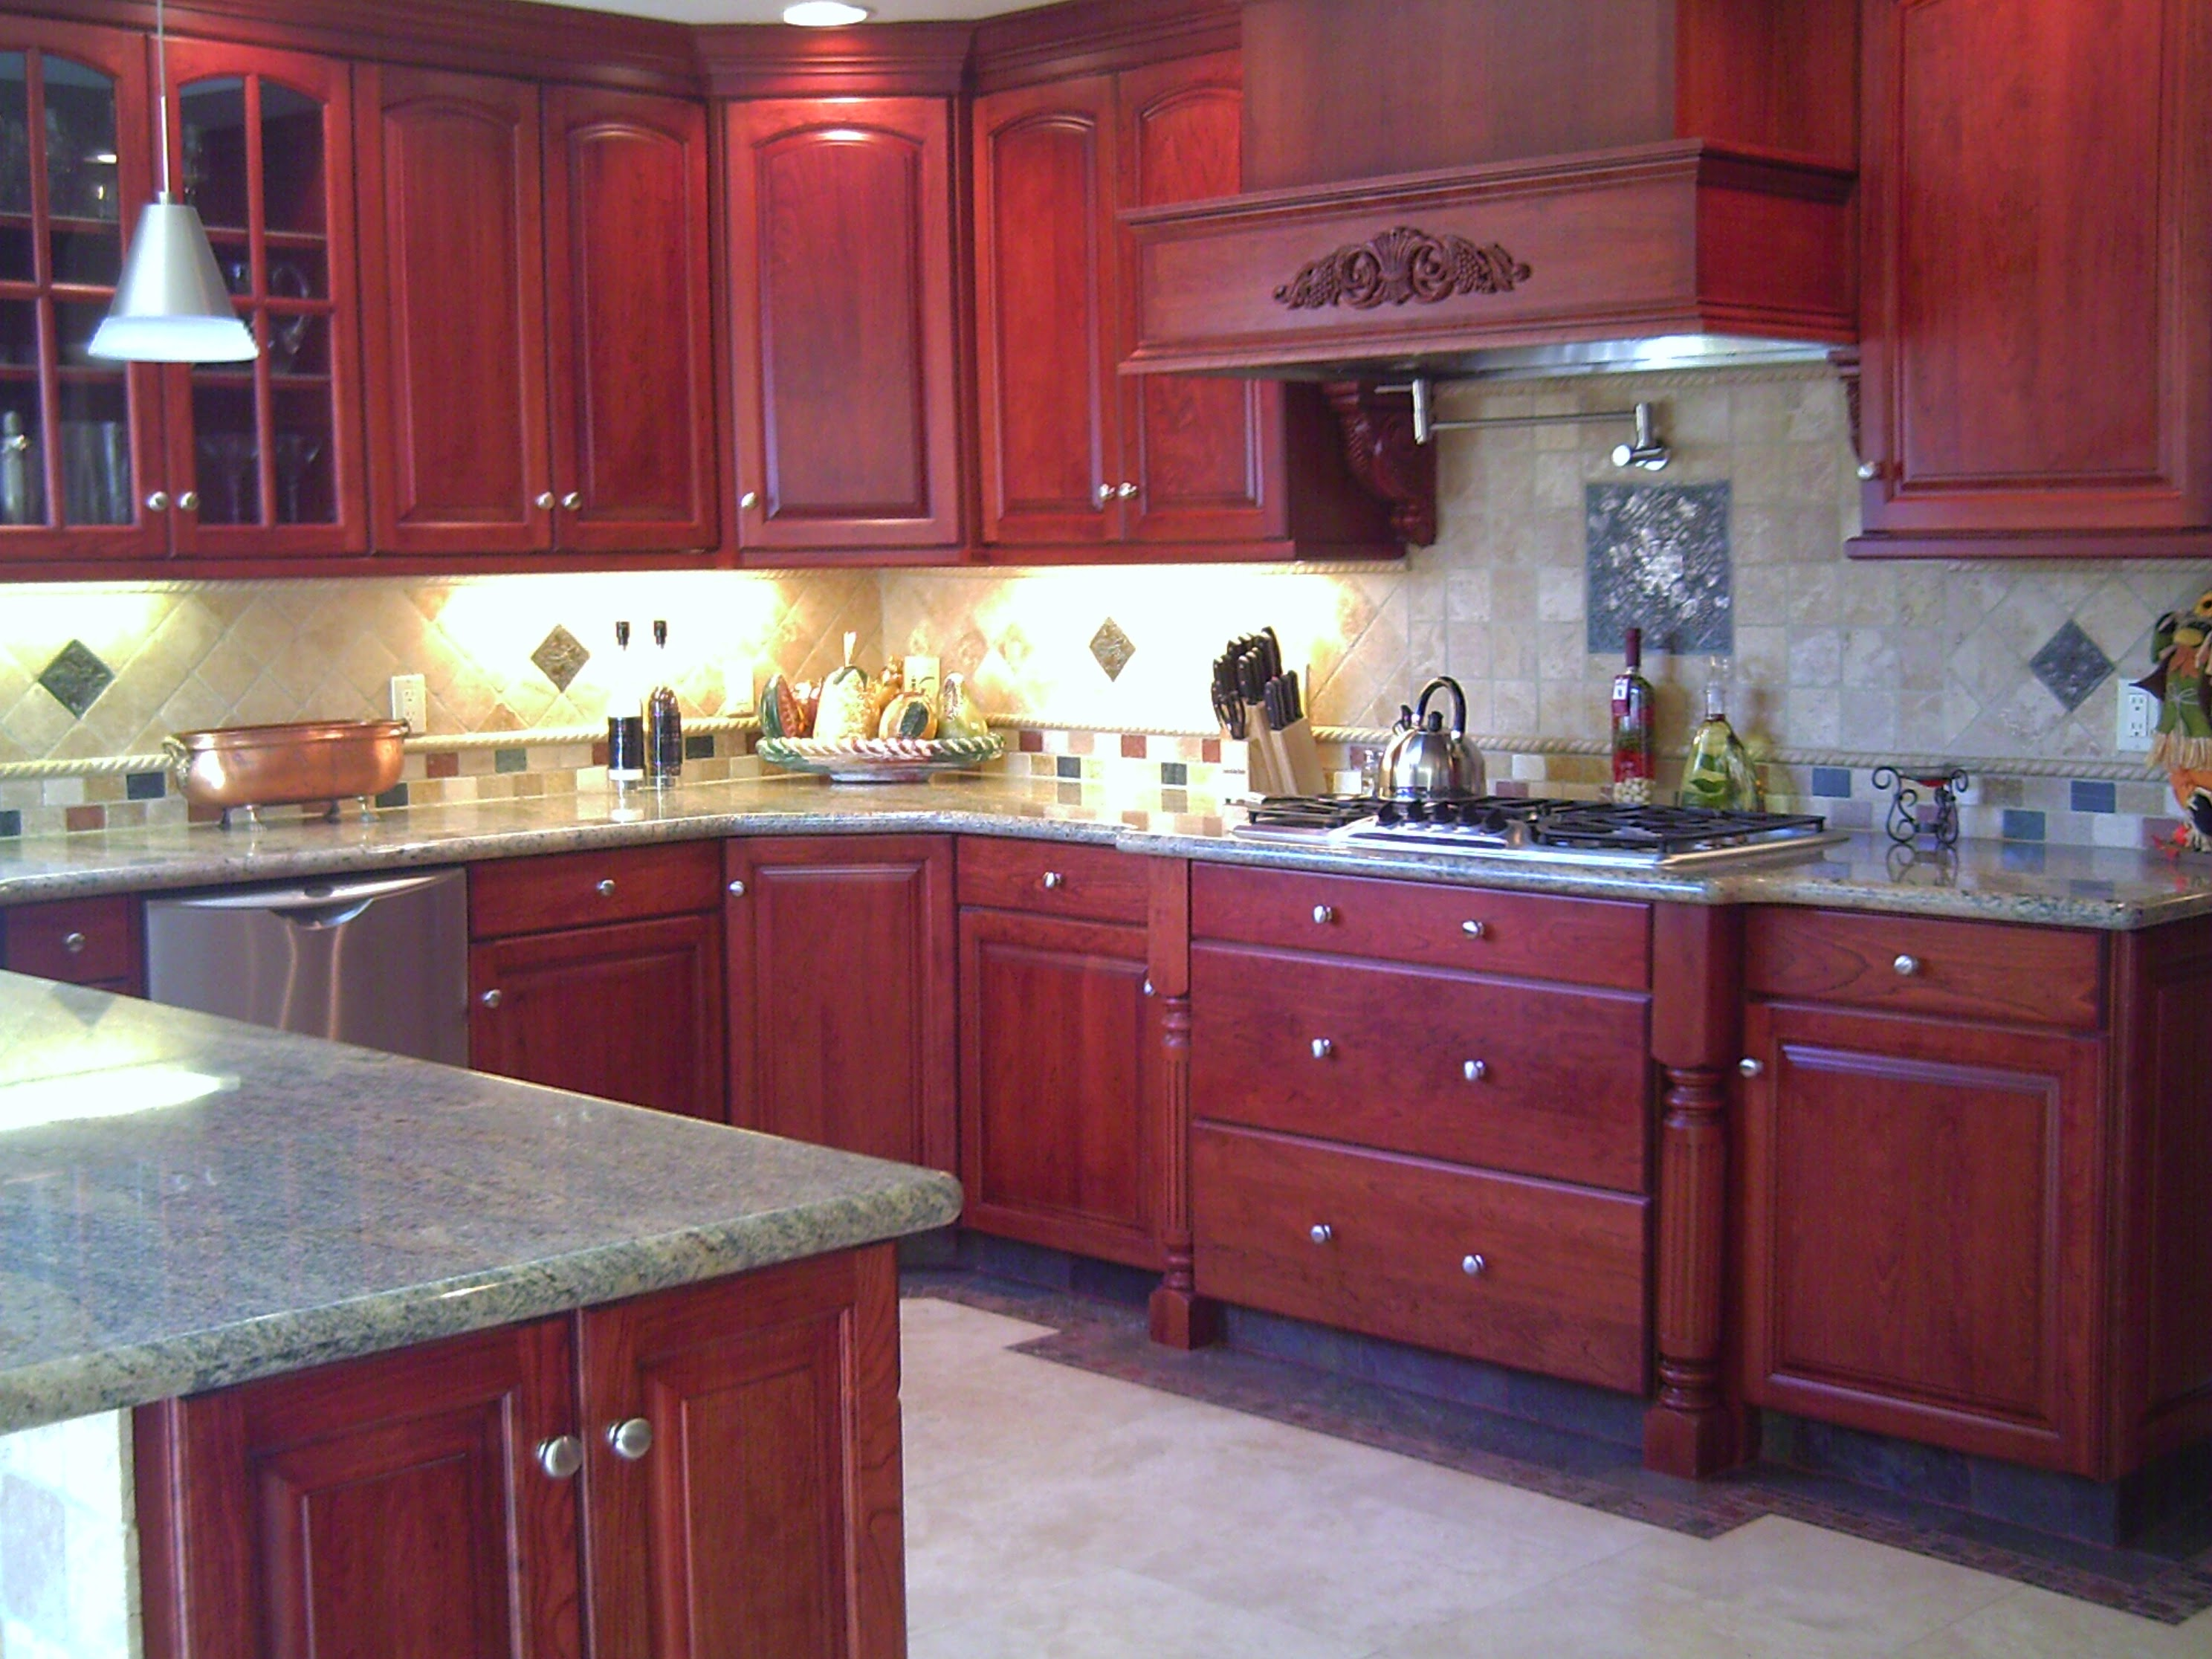 stone kitchen countertop install laminate of black low different miracle countertops how options scratch method maintenance kinds easy to size full resistant best